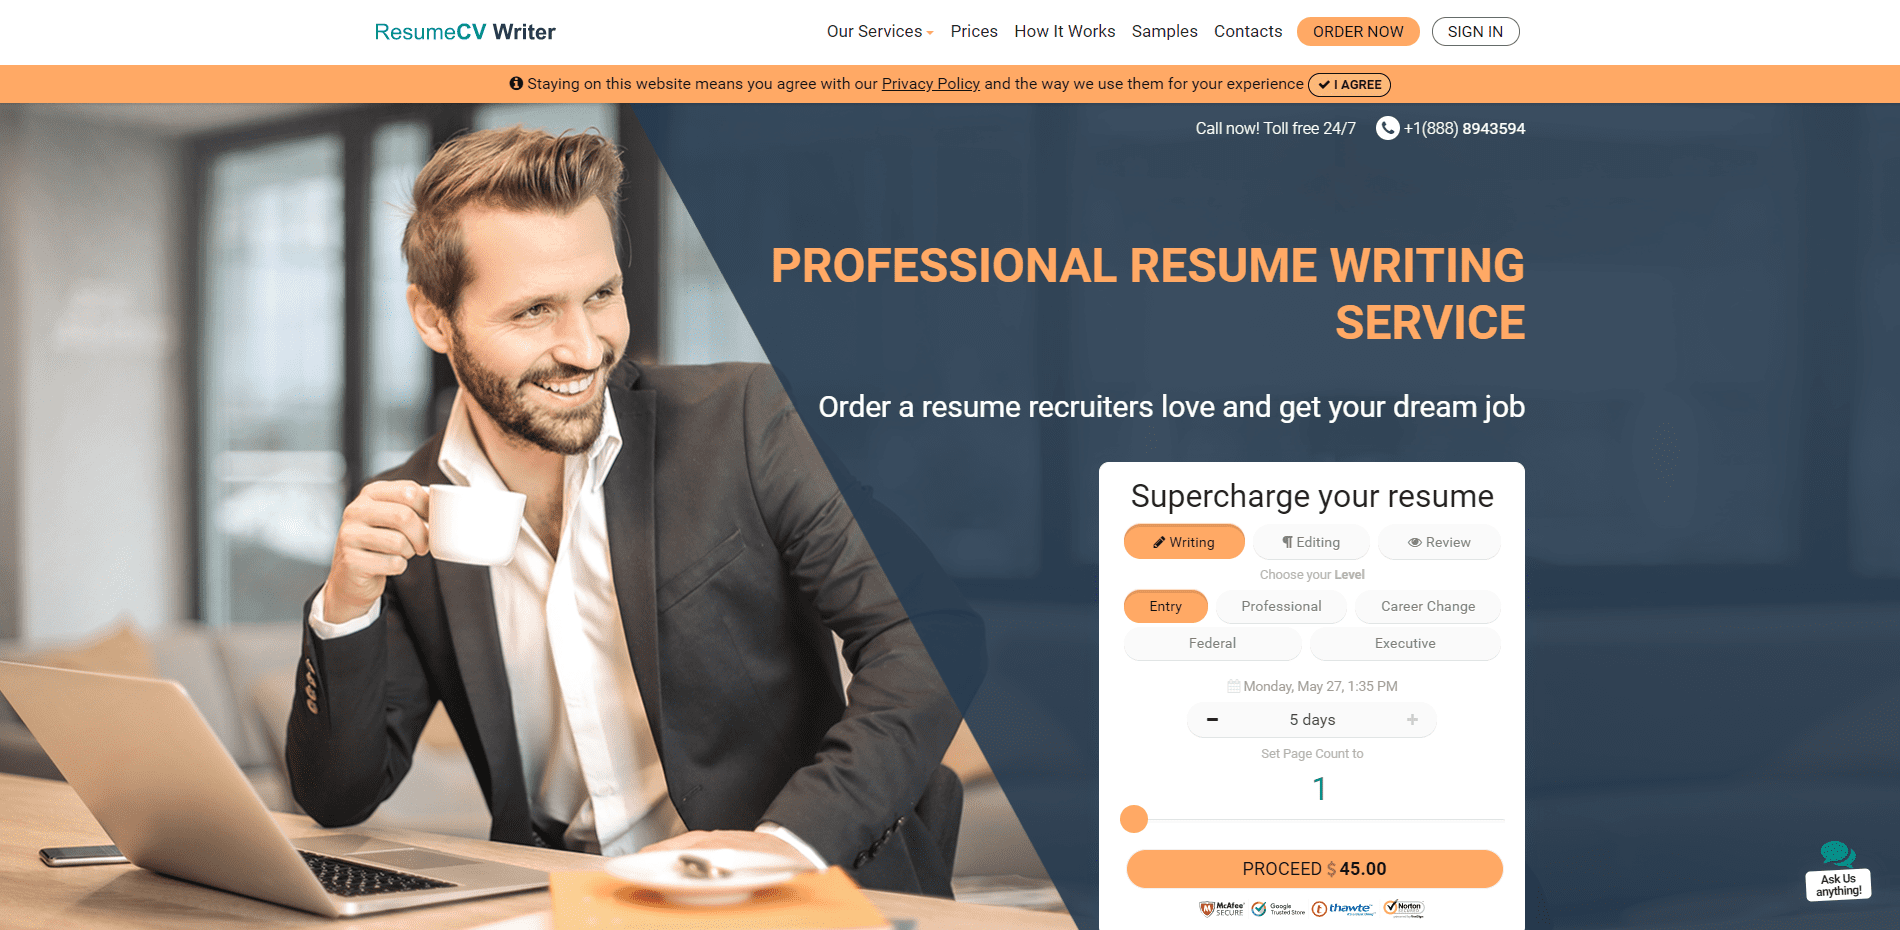 10 Best Military Resume Writing Services (2020): No. 4 Resume CV Writer